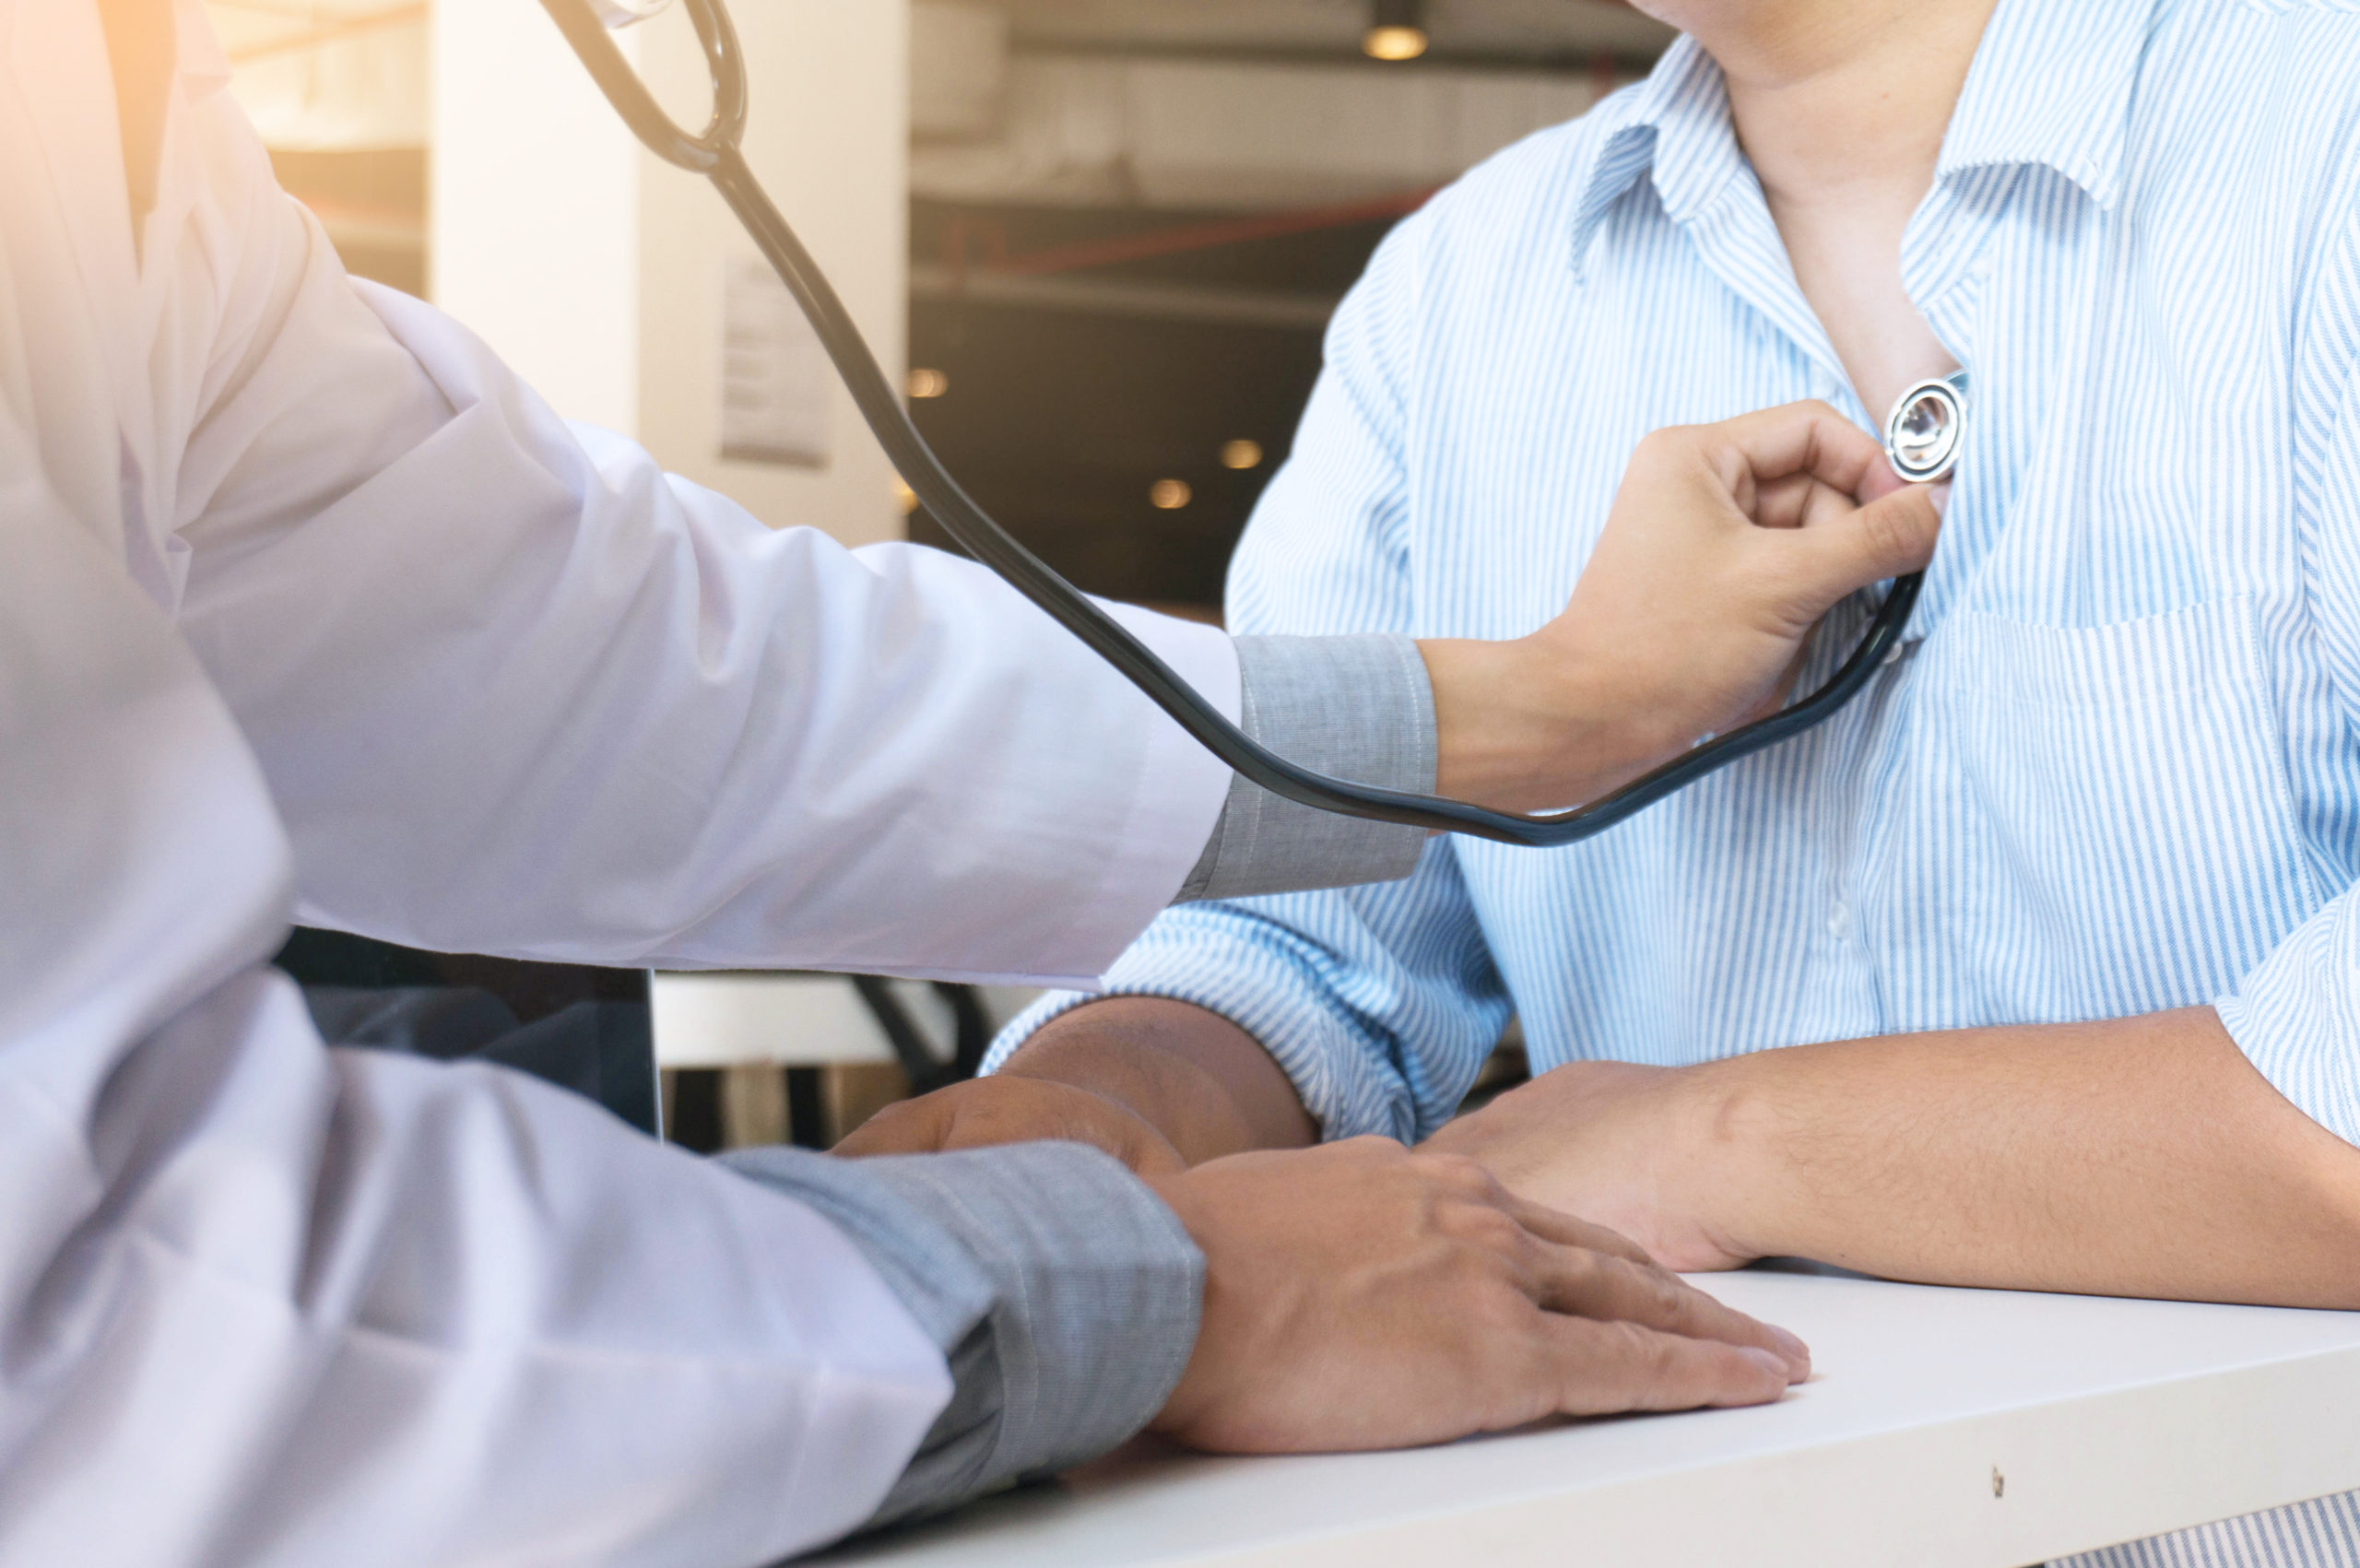 Provider checks patient's heartbeat using stethoscope.